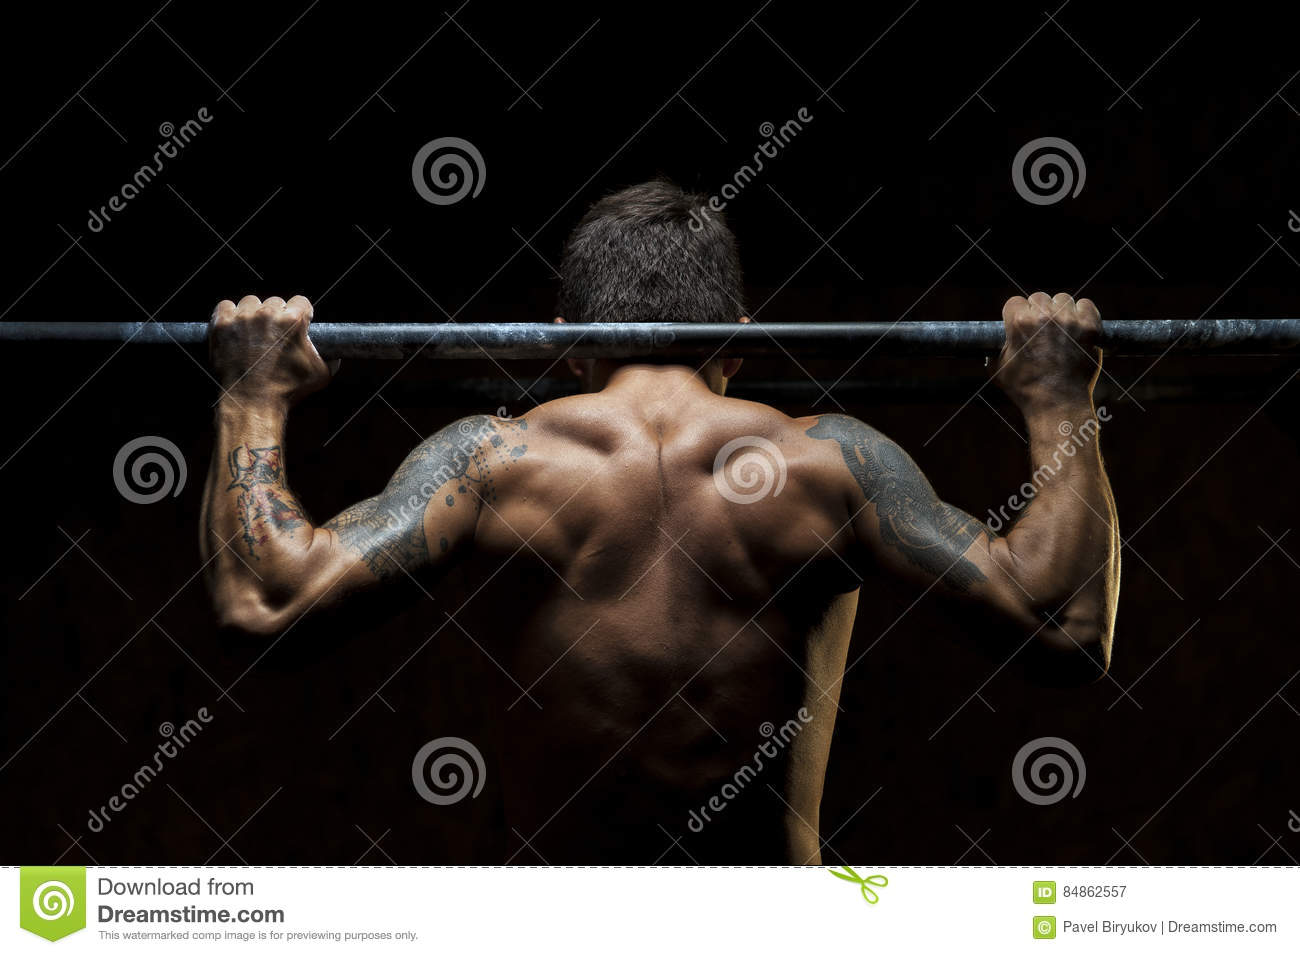 Male Muscular Athlete Doing Pull Up Exercise Stock Image - Image of